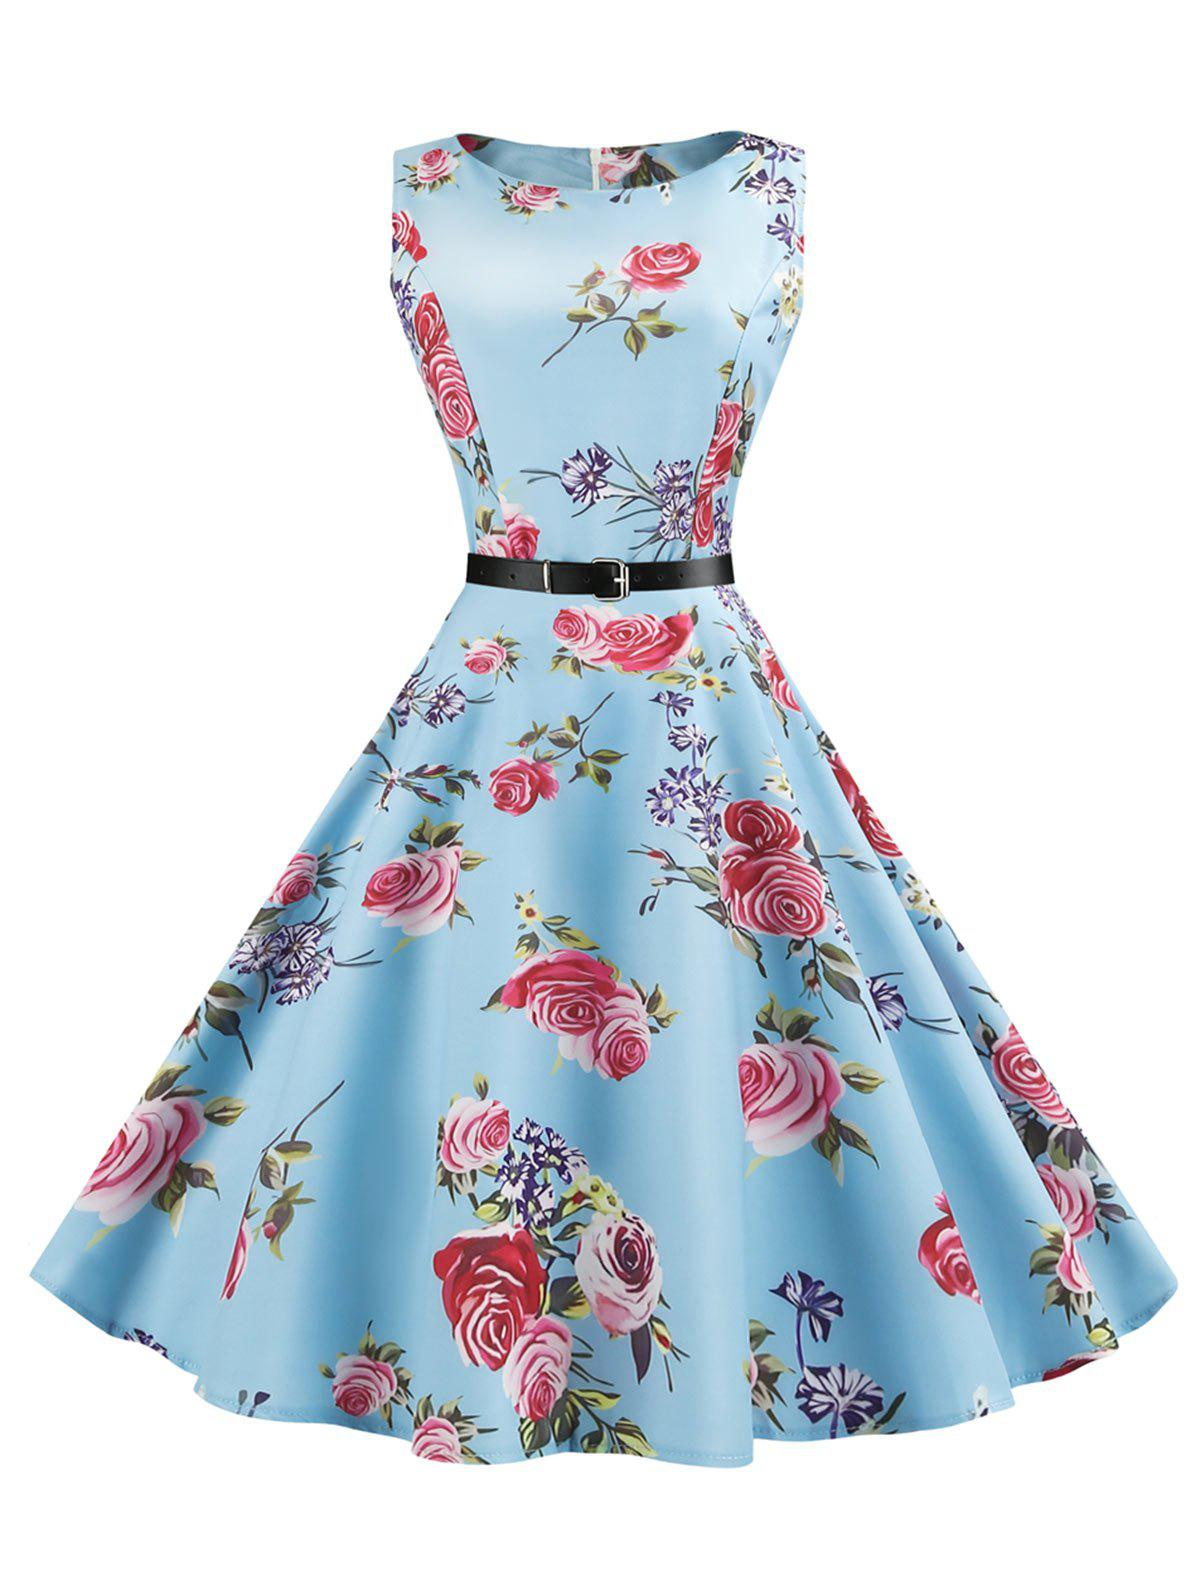 Vintage Sleeveless Floral Belt DressWOMEN<br><br>Size: 2XL; Color: WINDSOR BLUE; Style: Vintage; Material: Cotton,Polyester; Silhouette: A-Line; Dress Type: Swing Dress; Dresses Length: Mid-Calf; Neckline: Round Collar; Sleeve Length: Sleeveless; Pattern Type: Floral; With Belt: Yes; Season: Summer; Weight: 0.4500kg; Package Contents: 1 x Dress 1 x Belt;